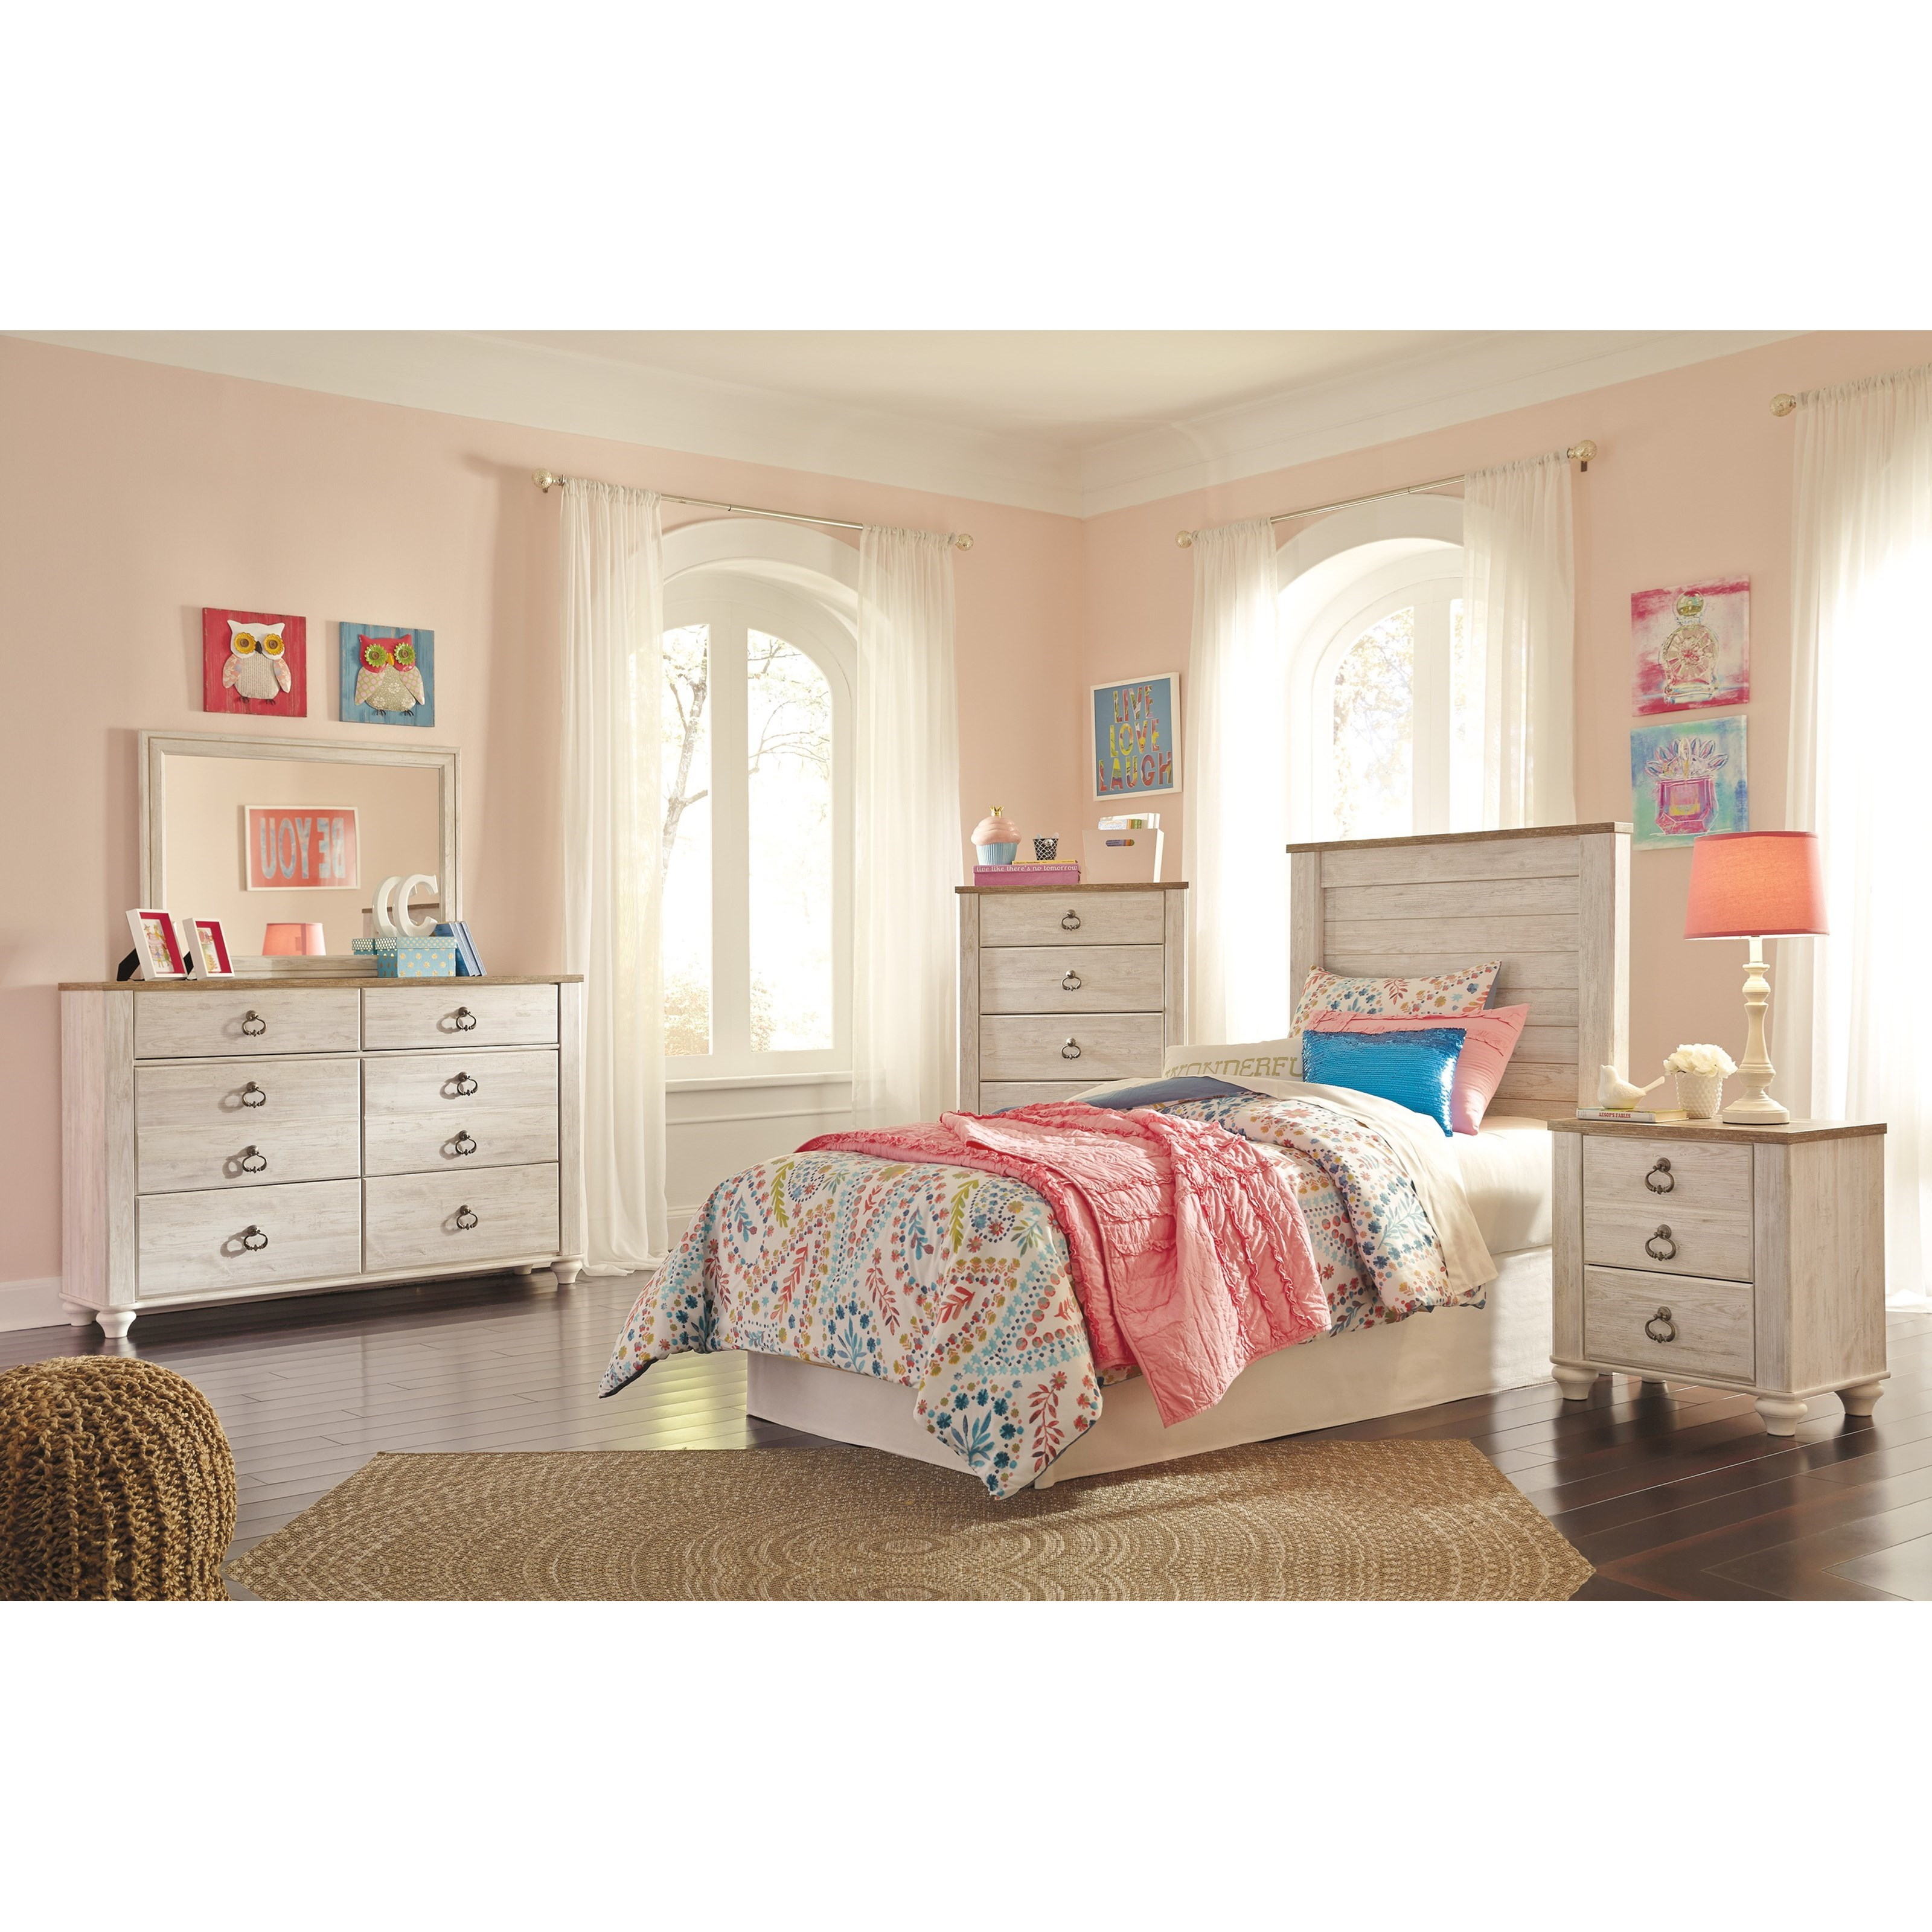 Willowton Twin Bedroom Group by Signature Design by Ashley at Northeast Factory Direct